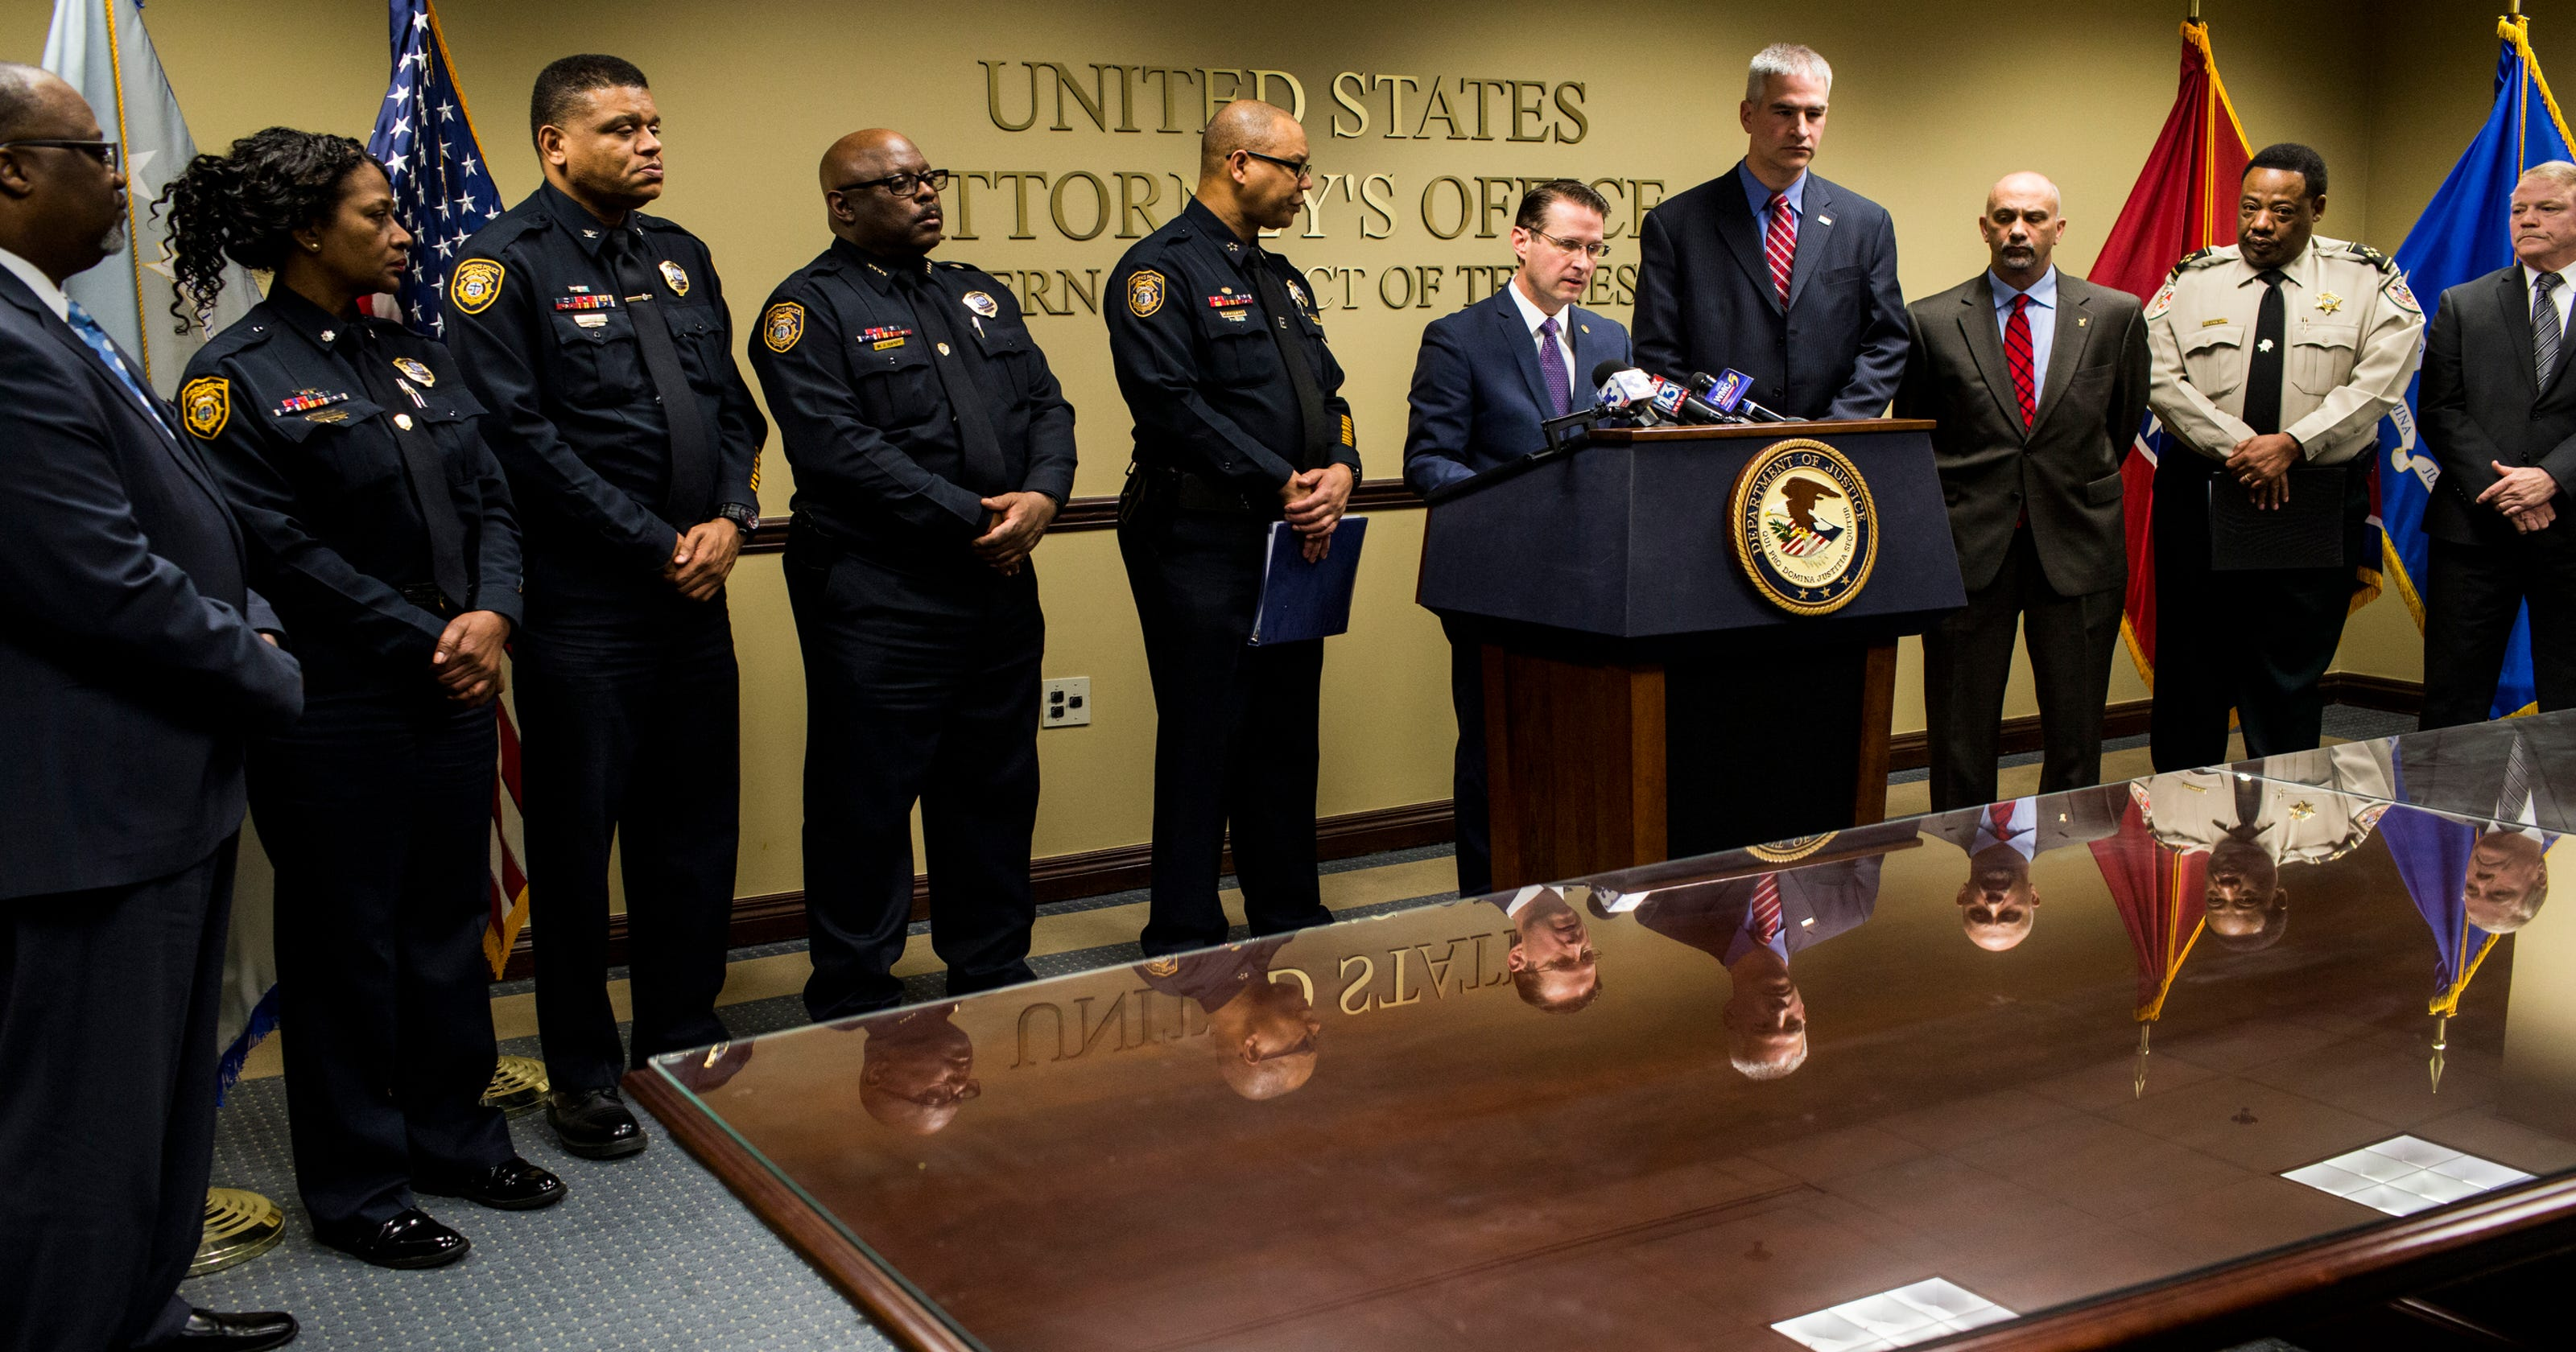 Feds indict 25 on drug and weapons charges in West Tennessee